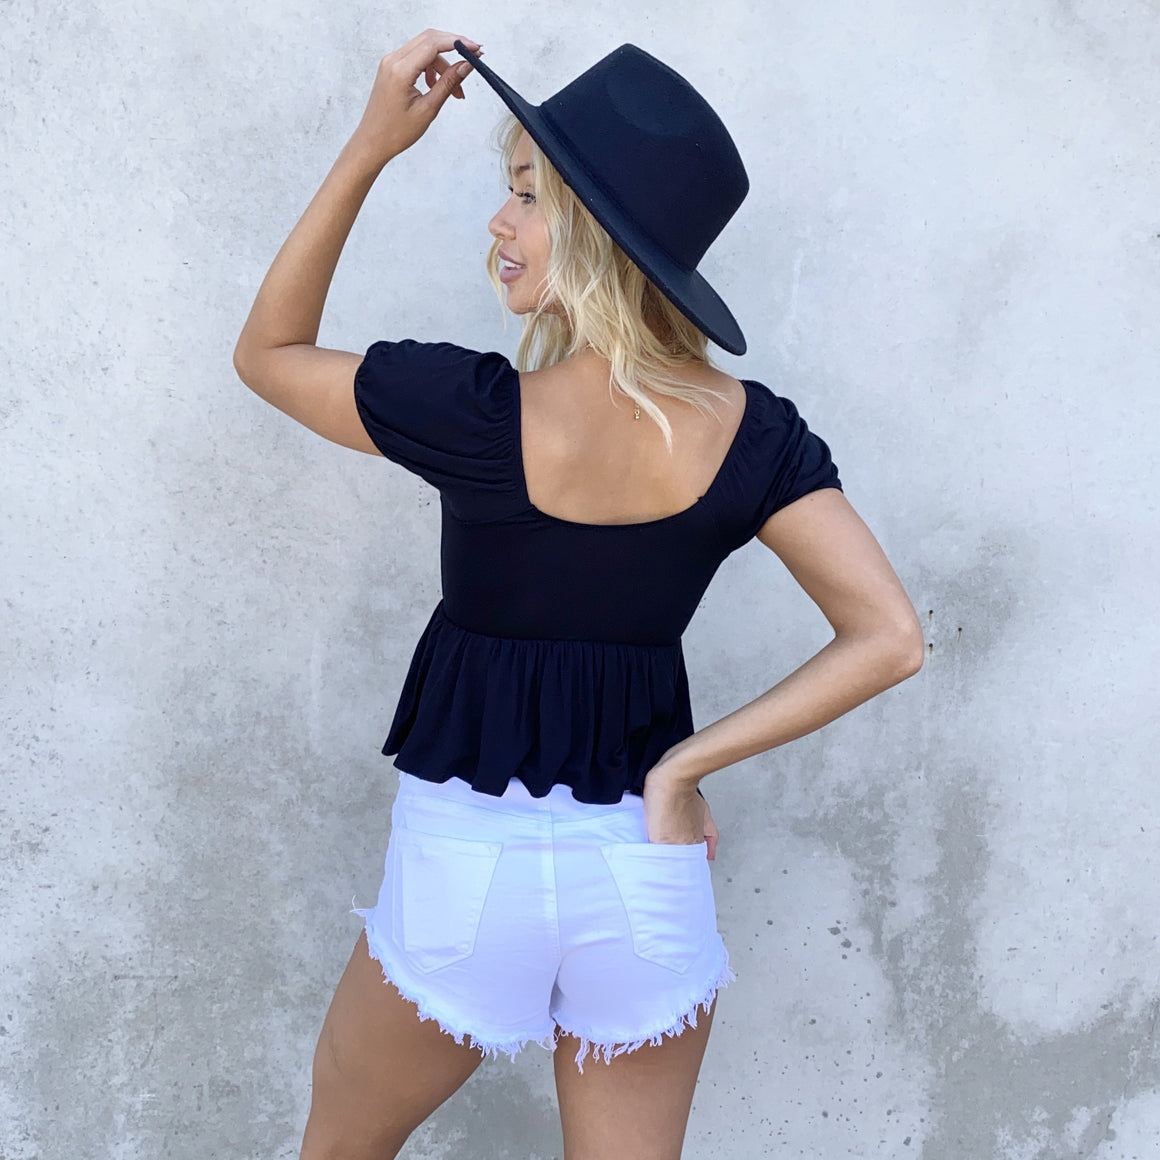 Saving Grace Jersey Top In Black - Dainty Hooligan